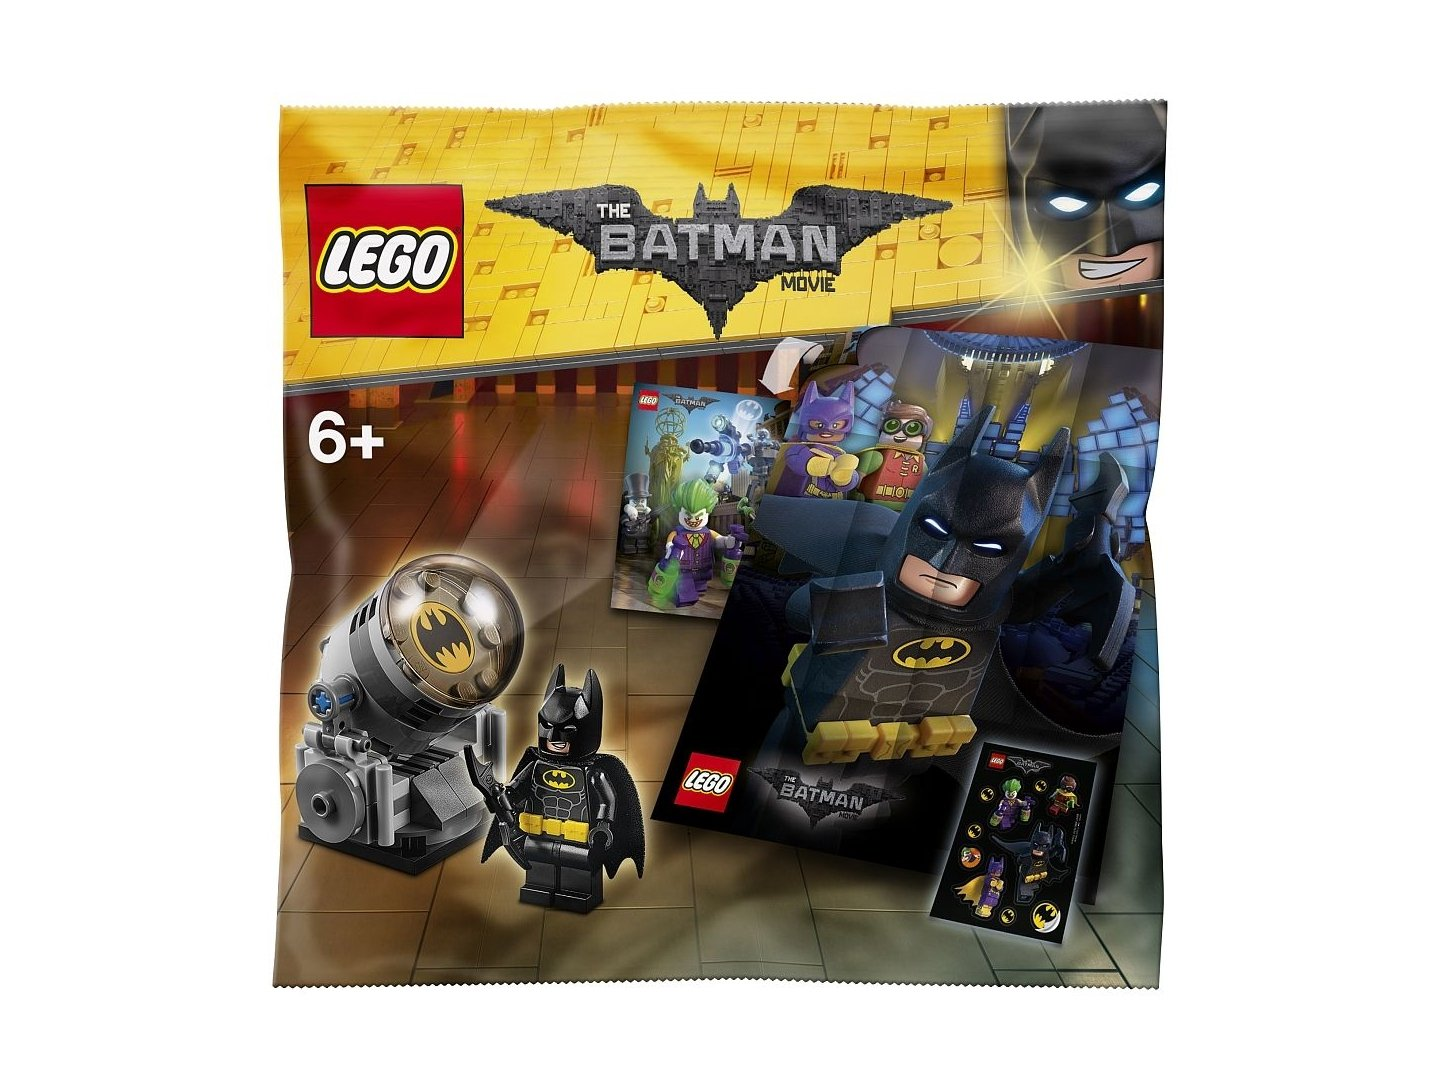 LEGO Batman Movie Accessory pack 5004930